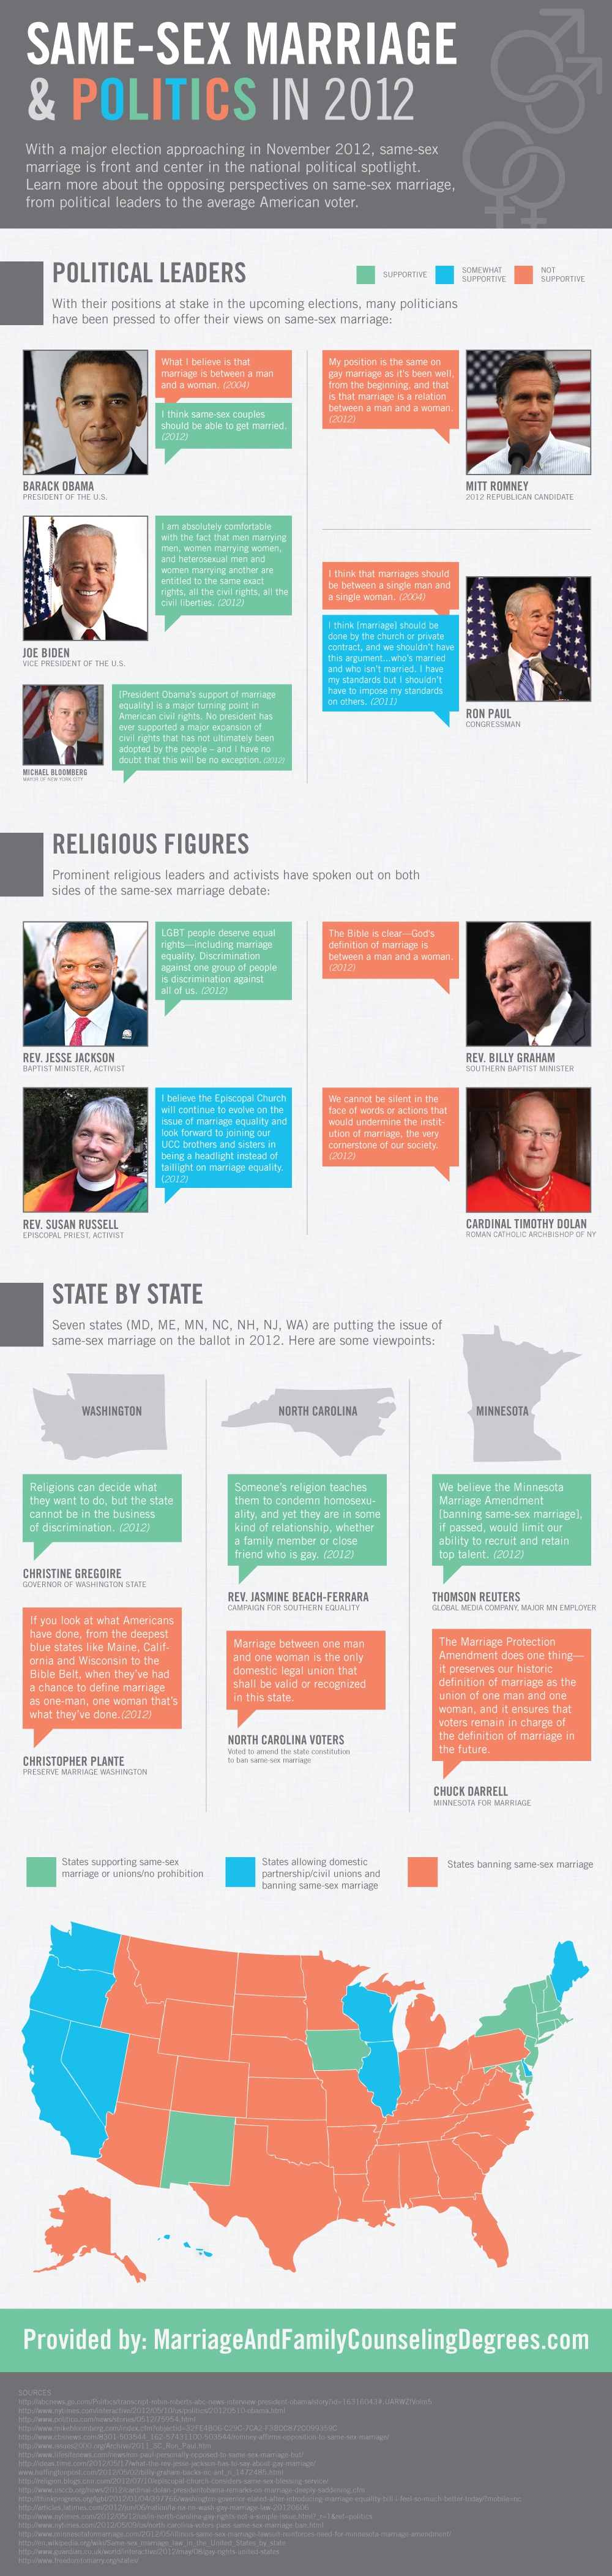 Same-Sex Marriage and Politics in 2012